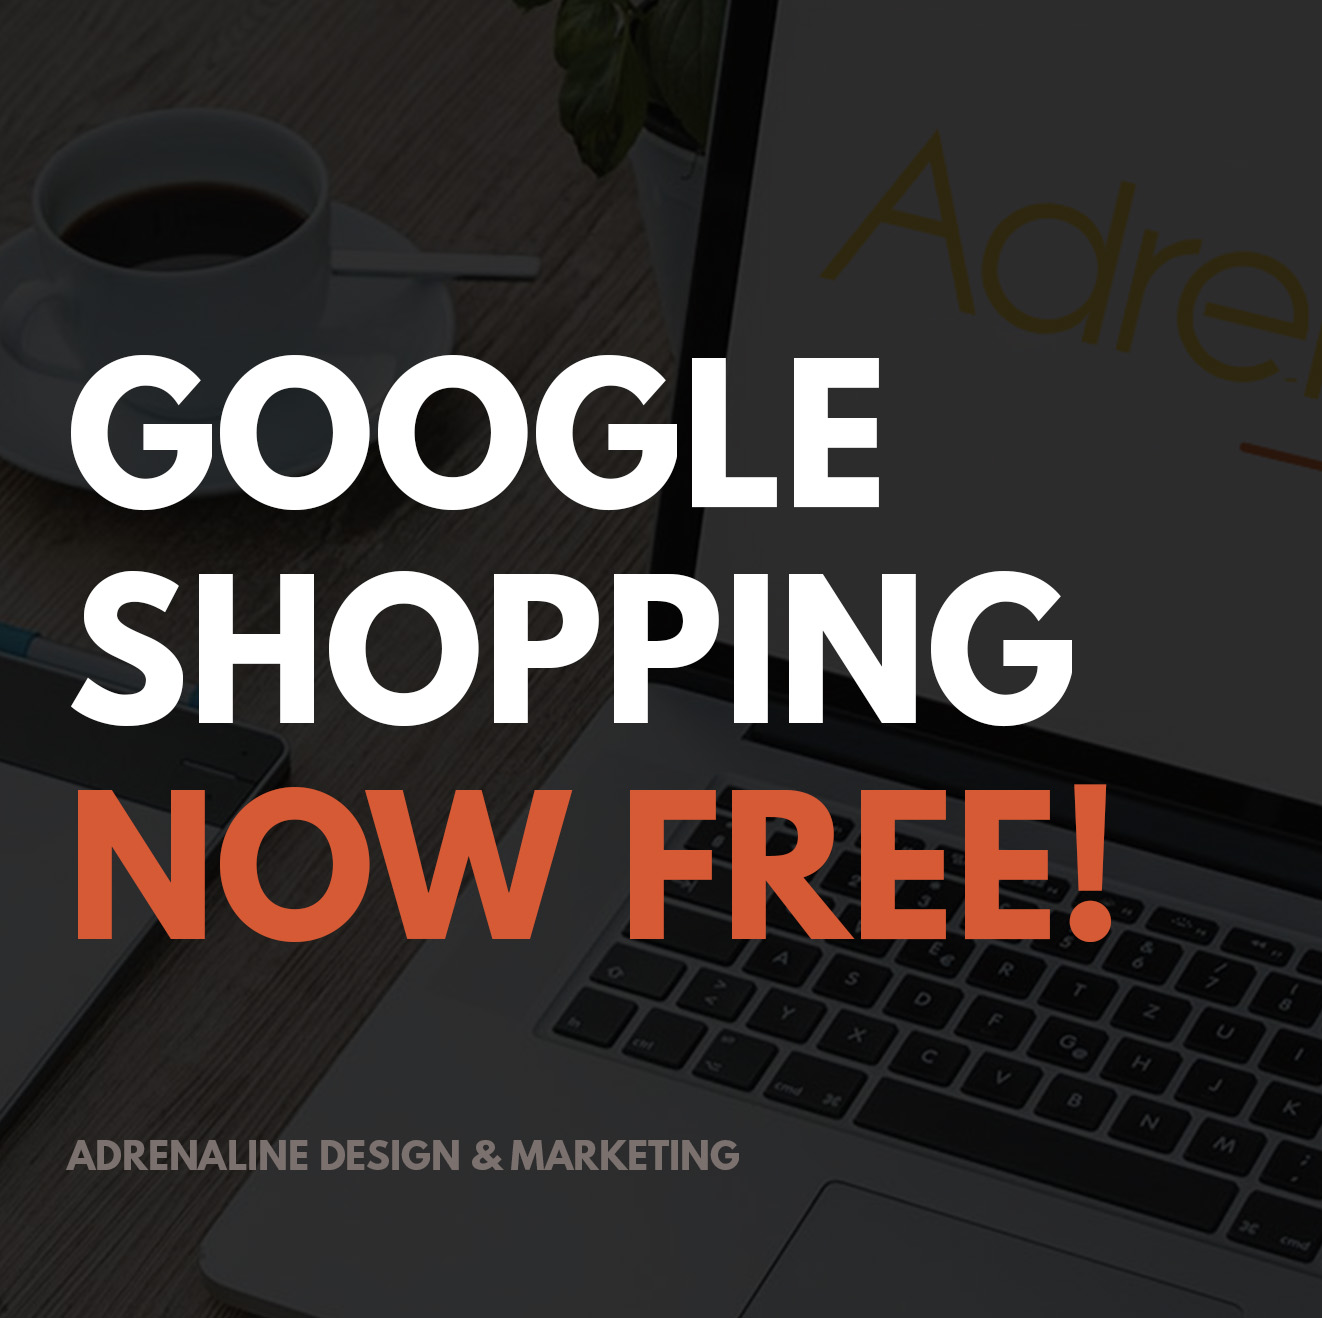 Google Shopping is Now Free